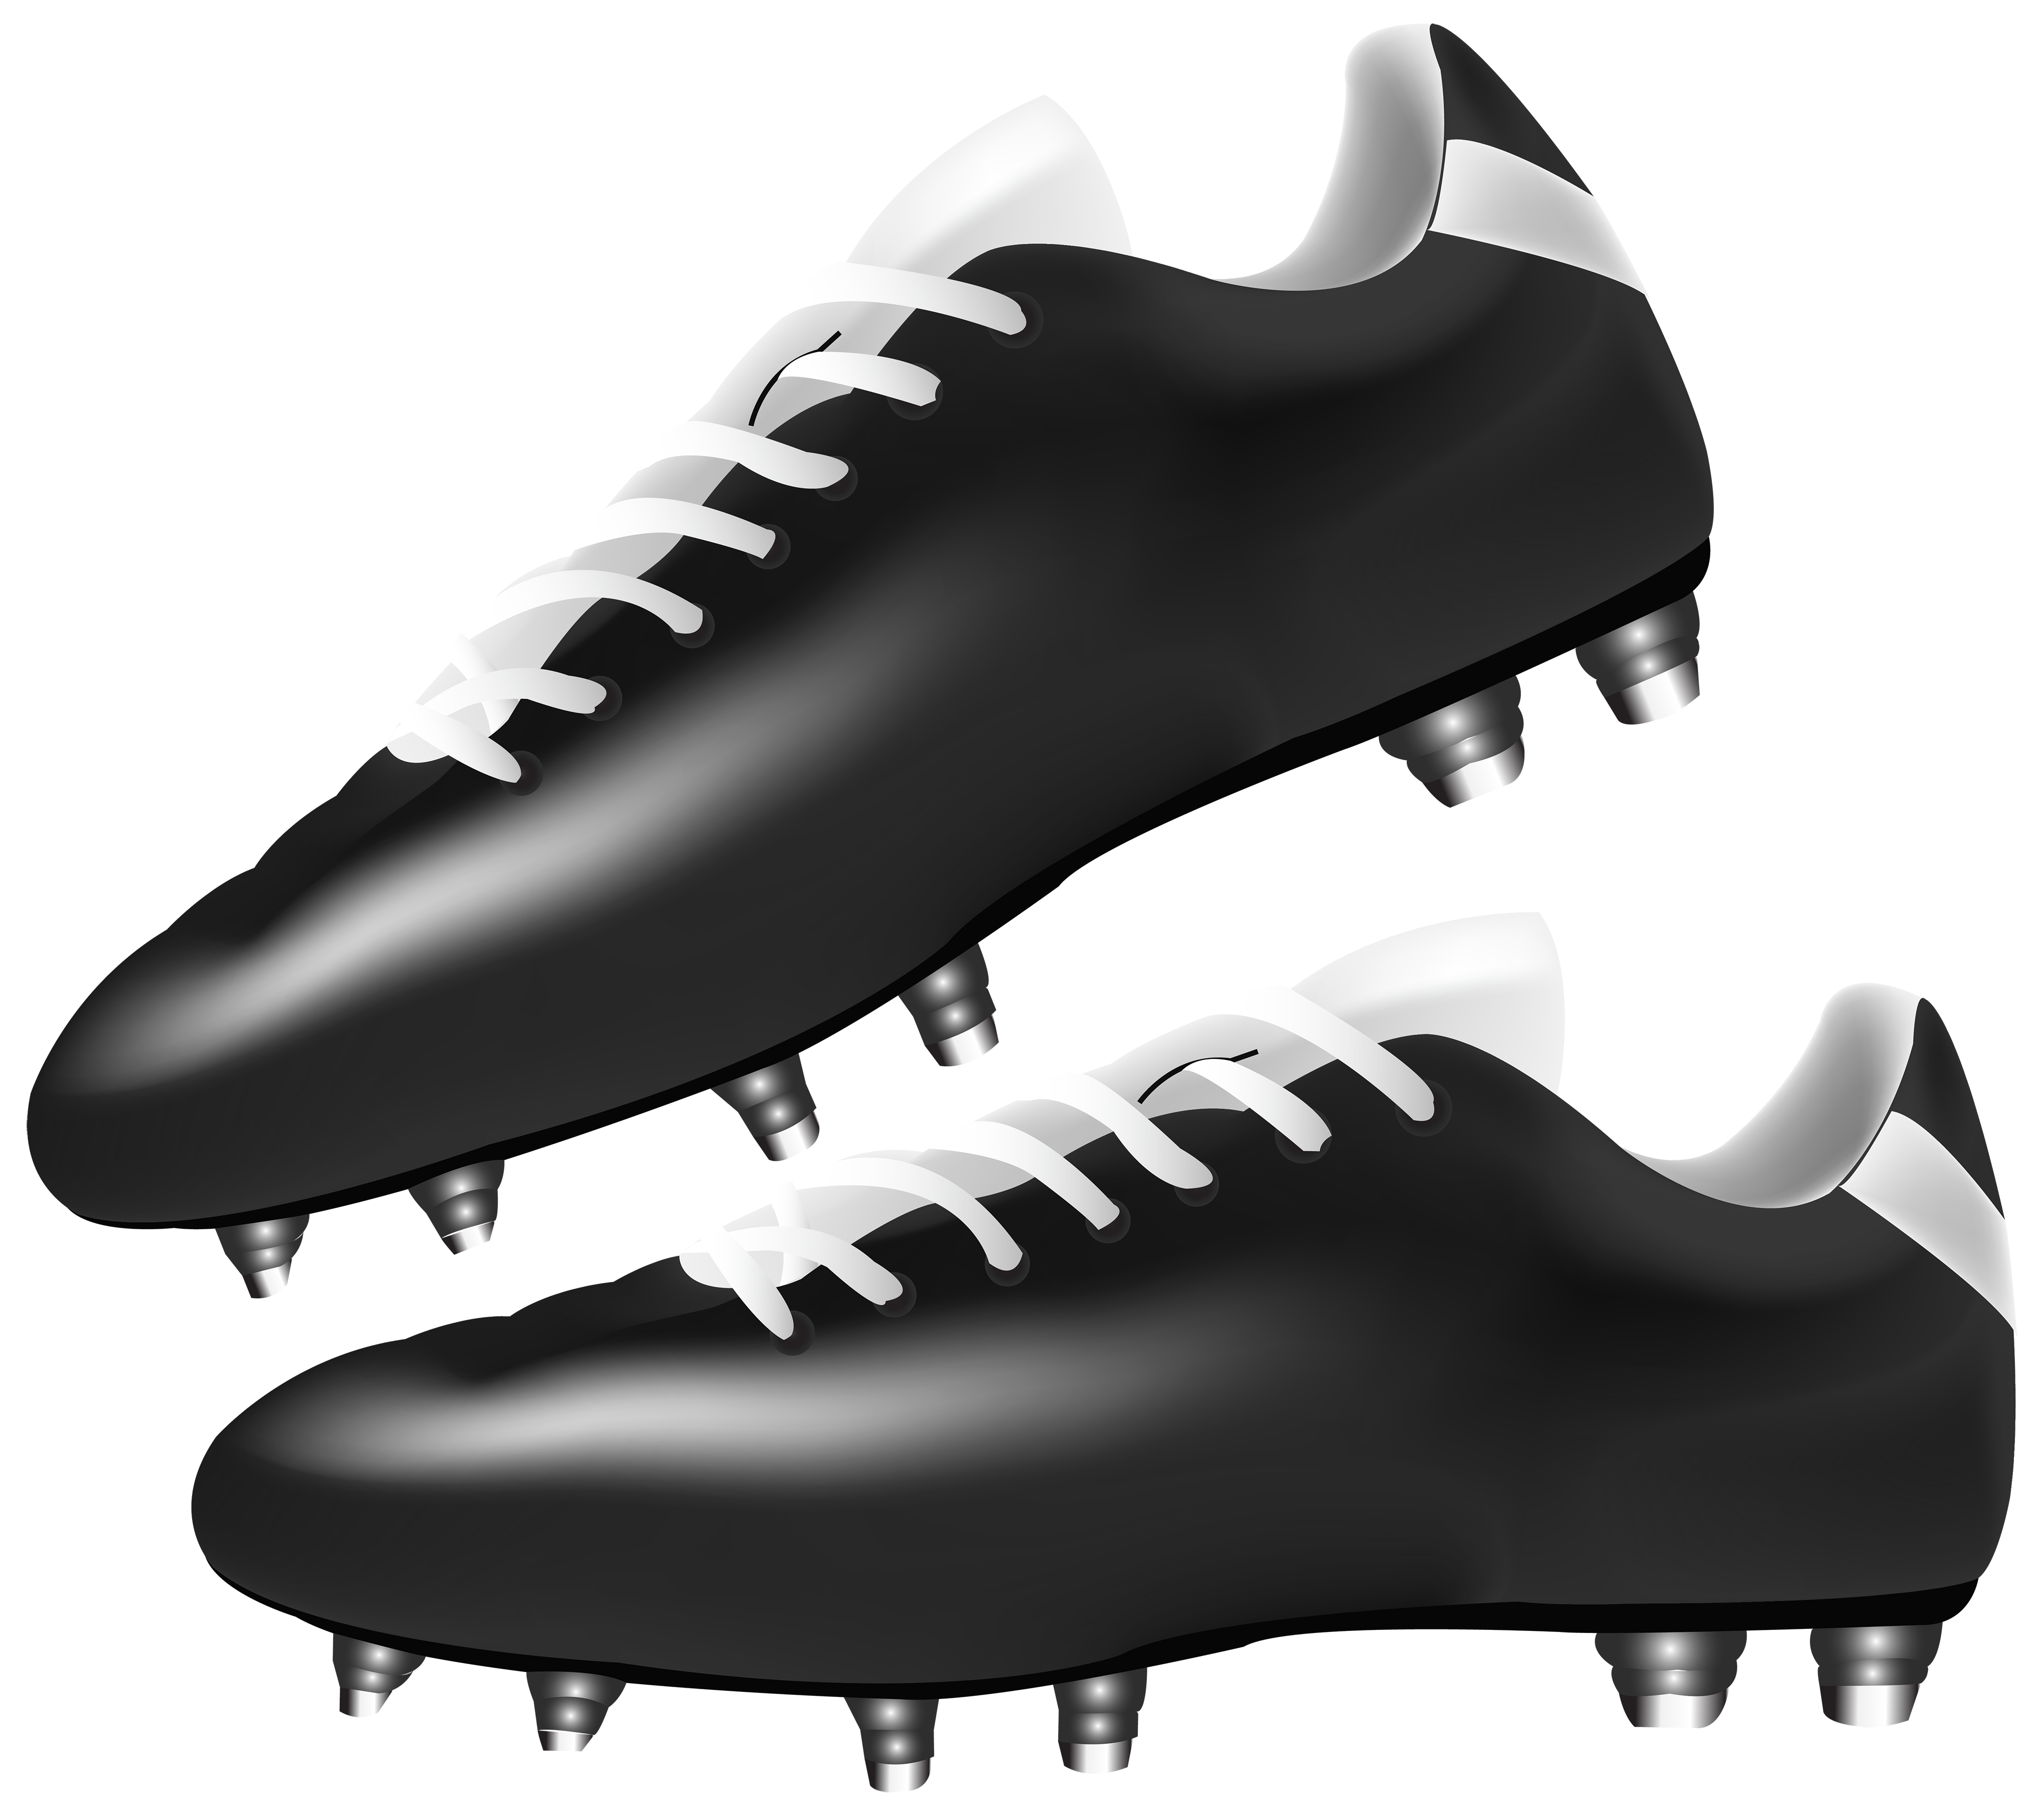 Football modern clipart png stock Football boot clipart - Clipground png stock